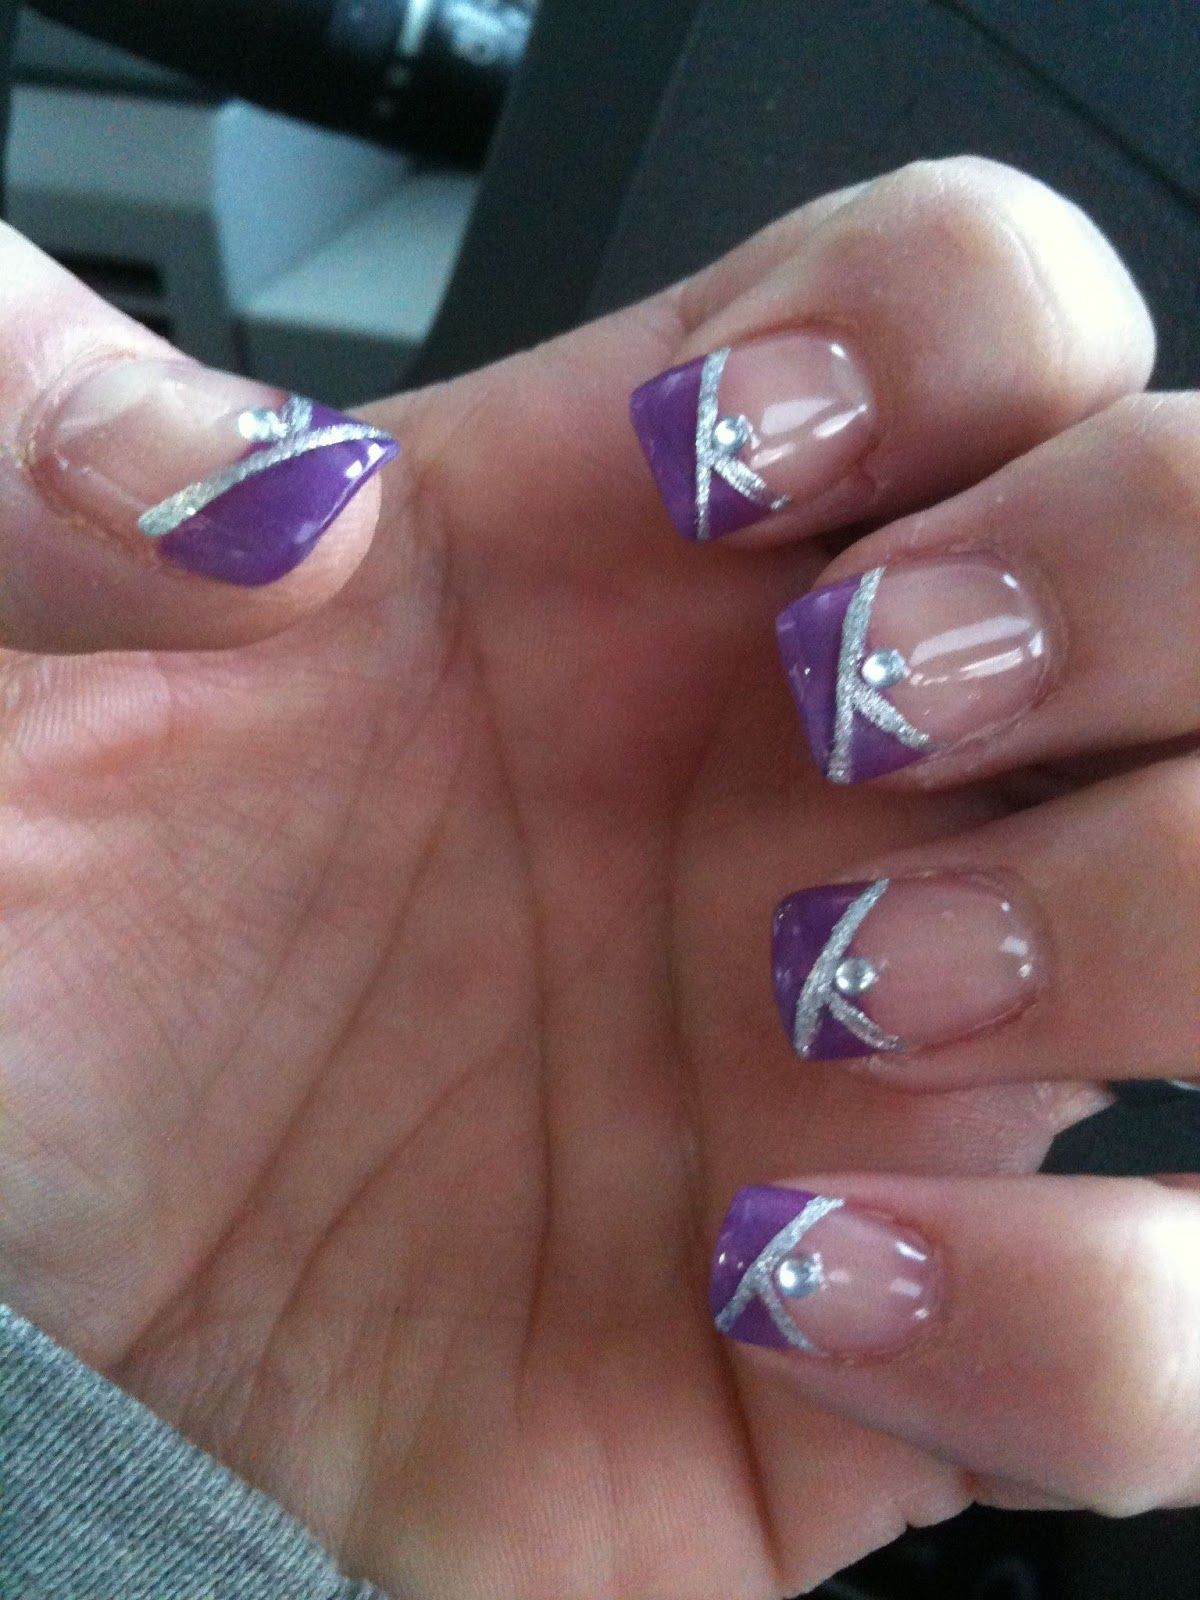 47 Nail Ideas For Red Dress Nail Designs Purple Wedding Nails Purple And Silver Nails Purple Nail Designs